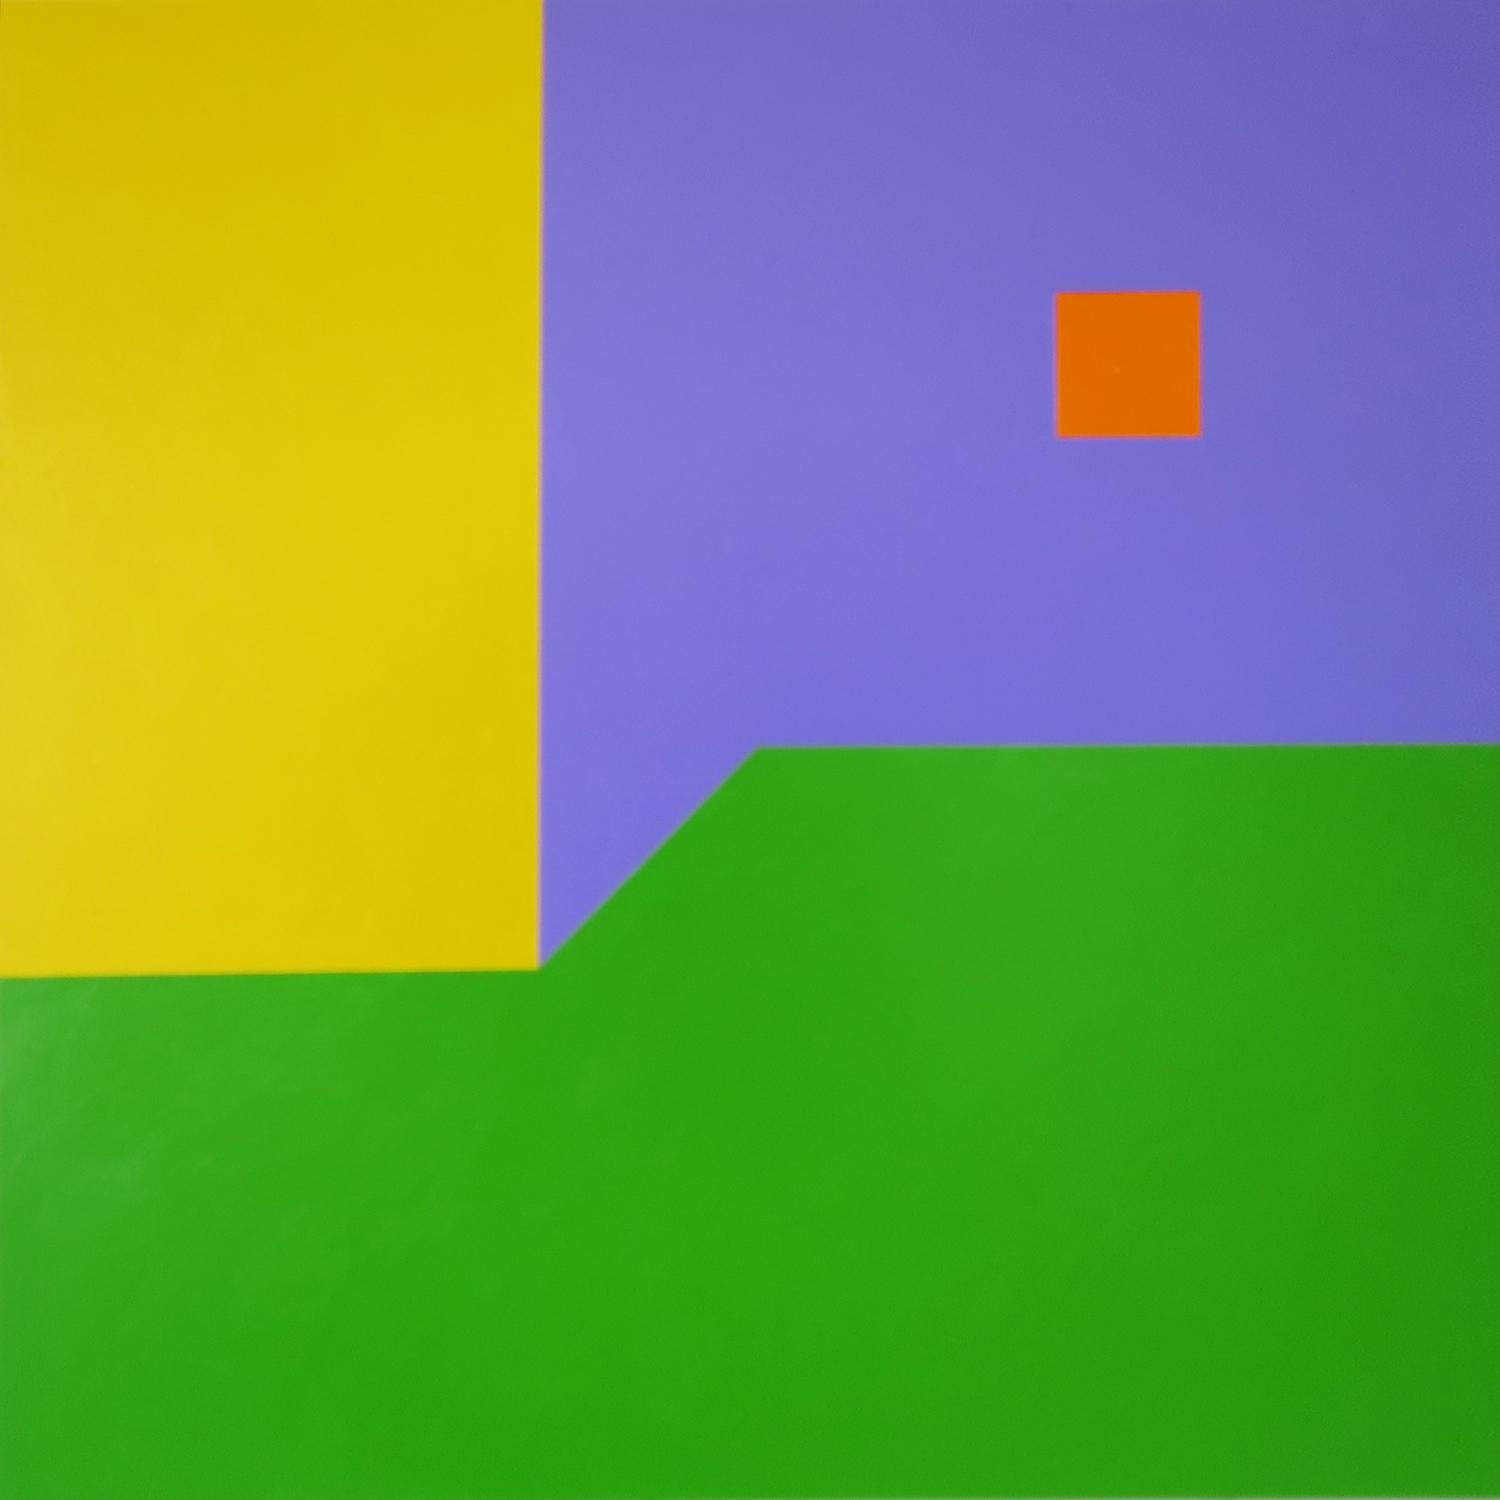 Scene 89, Interior space, Yellow, Purple, Green, Small Acrylic painting, lines